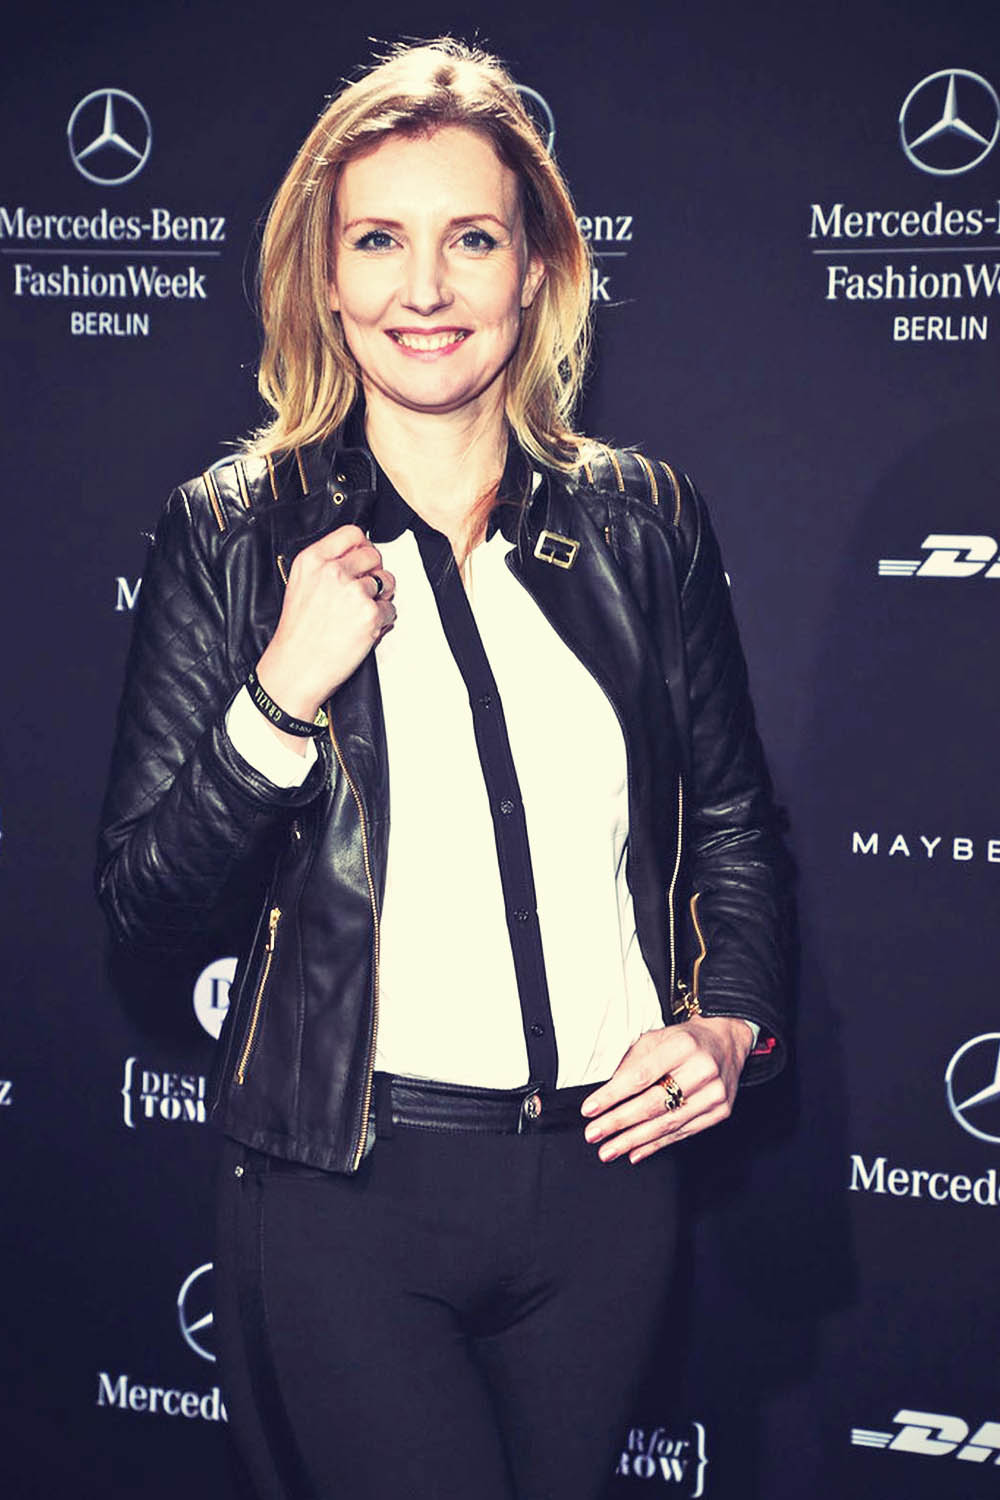 Jette Joop attends Mercedes-Benz Fashion Week Berlin 2013